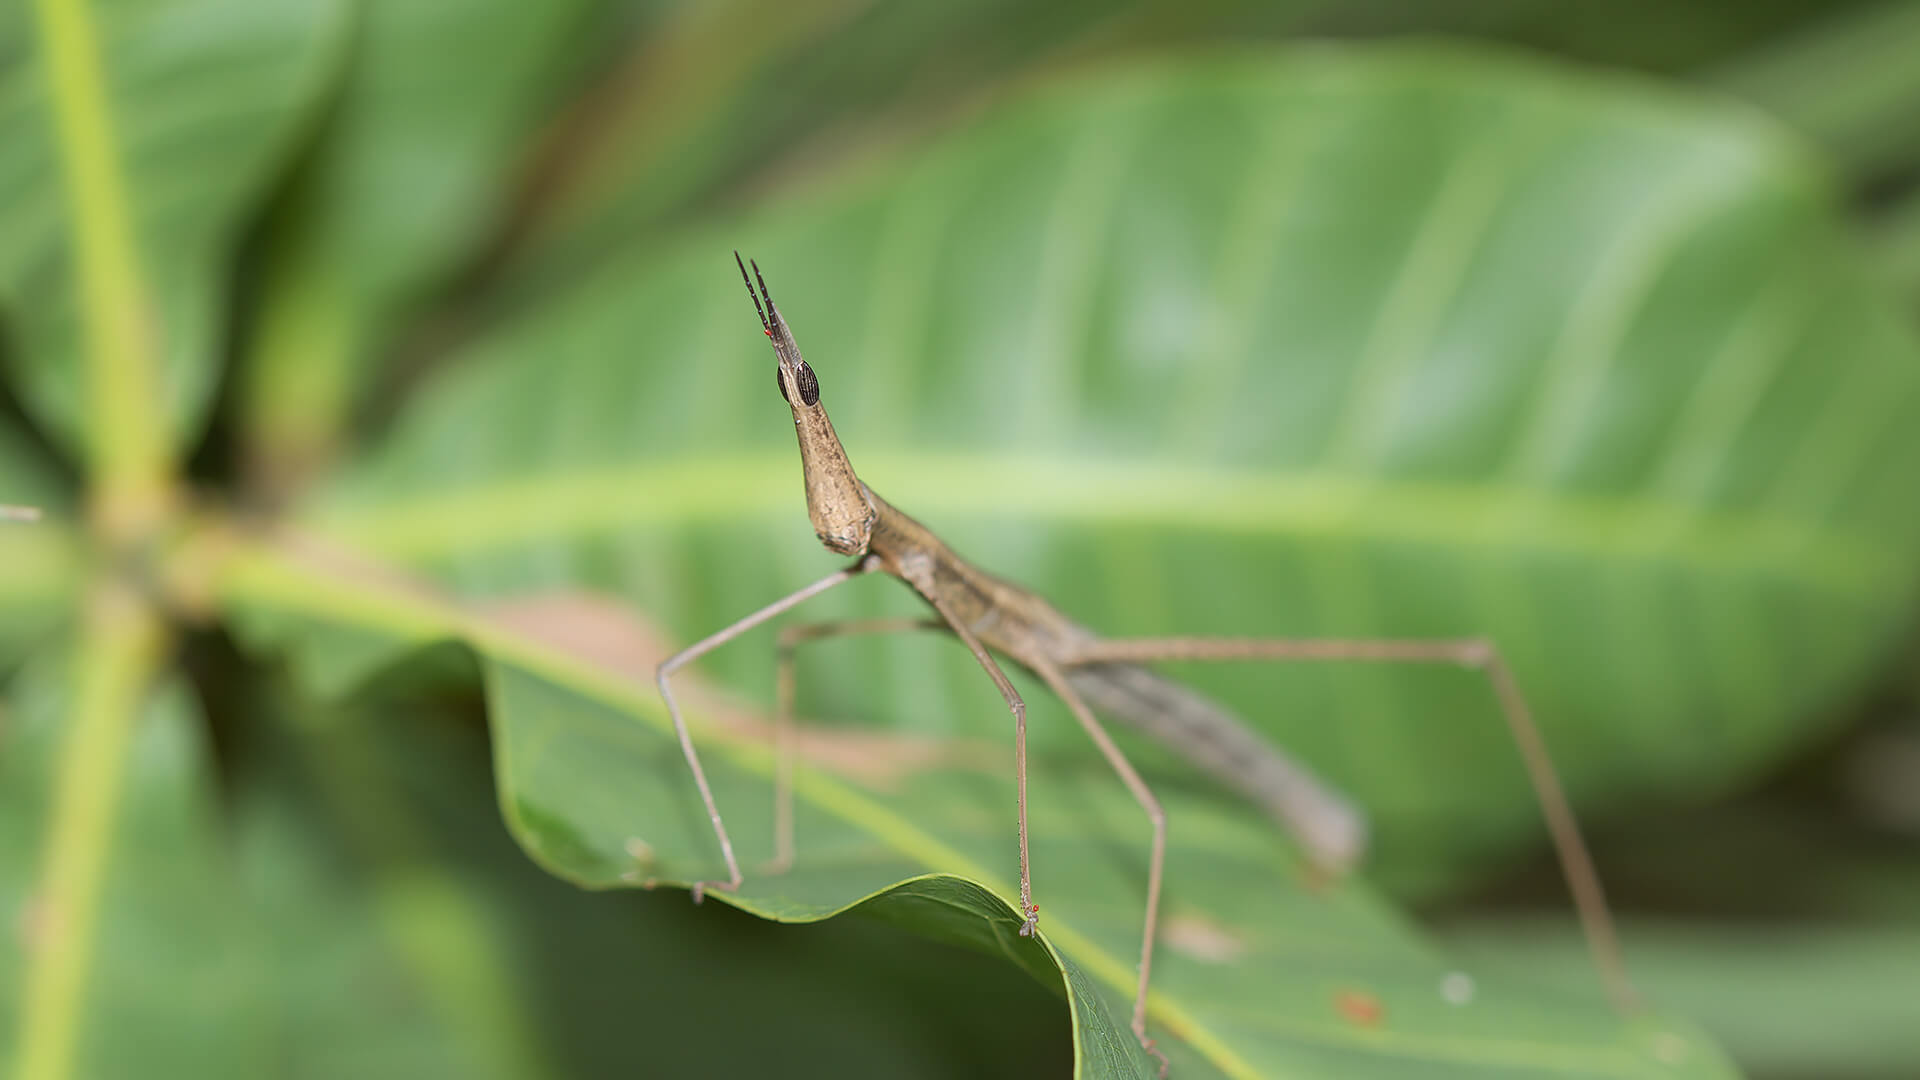 Jumping stick insect on large green leaf